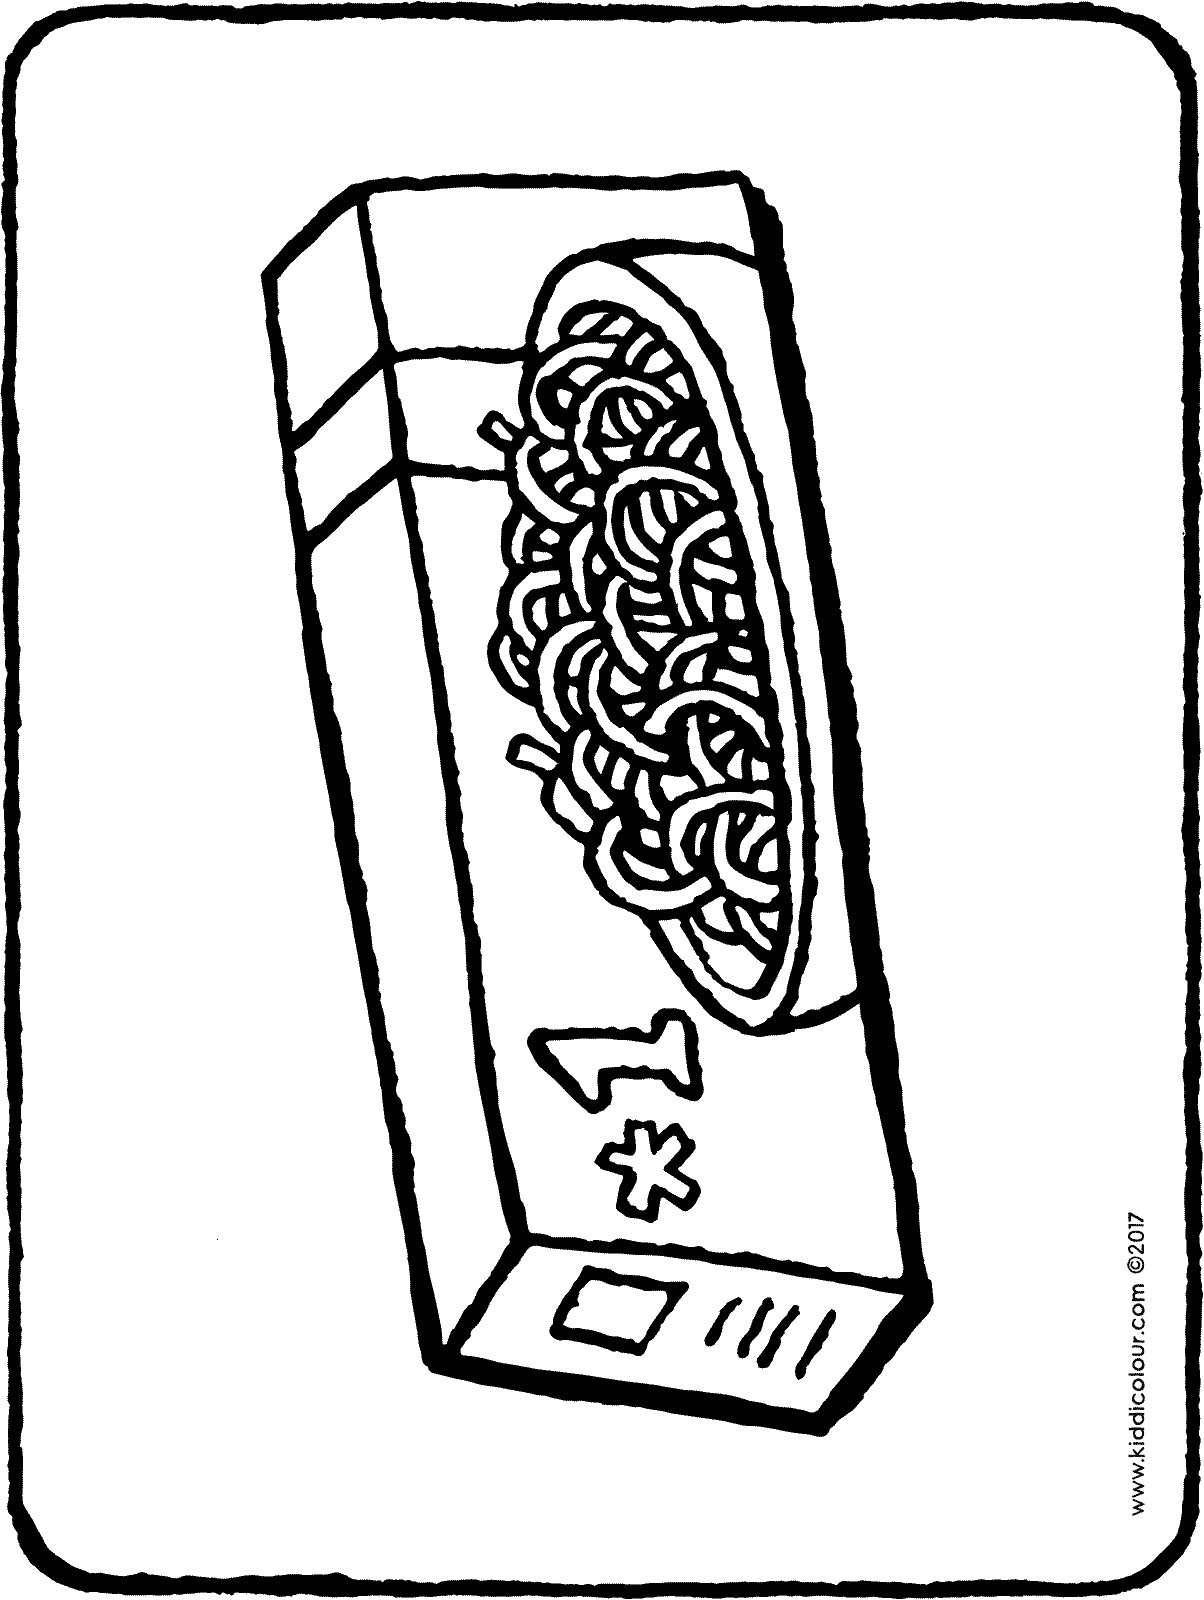 spaghetti in a pocket colouring page drawing picture 01H